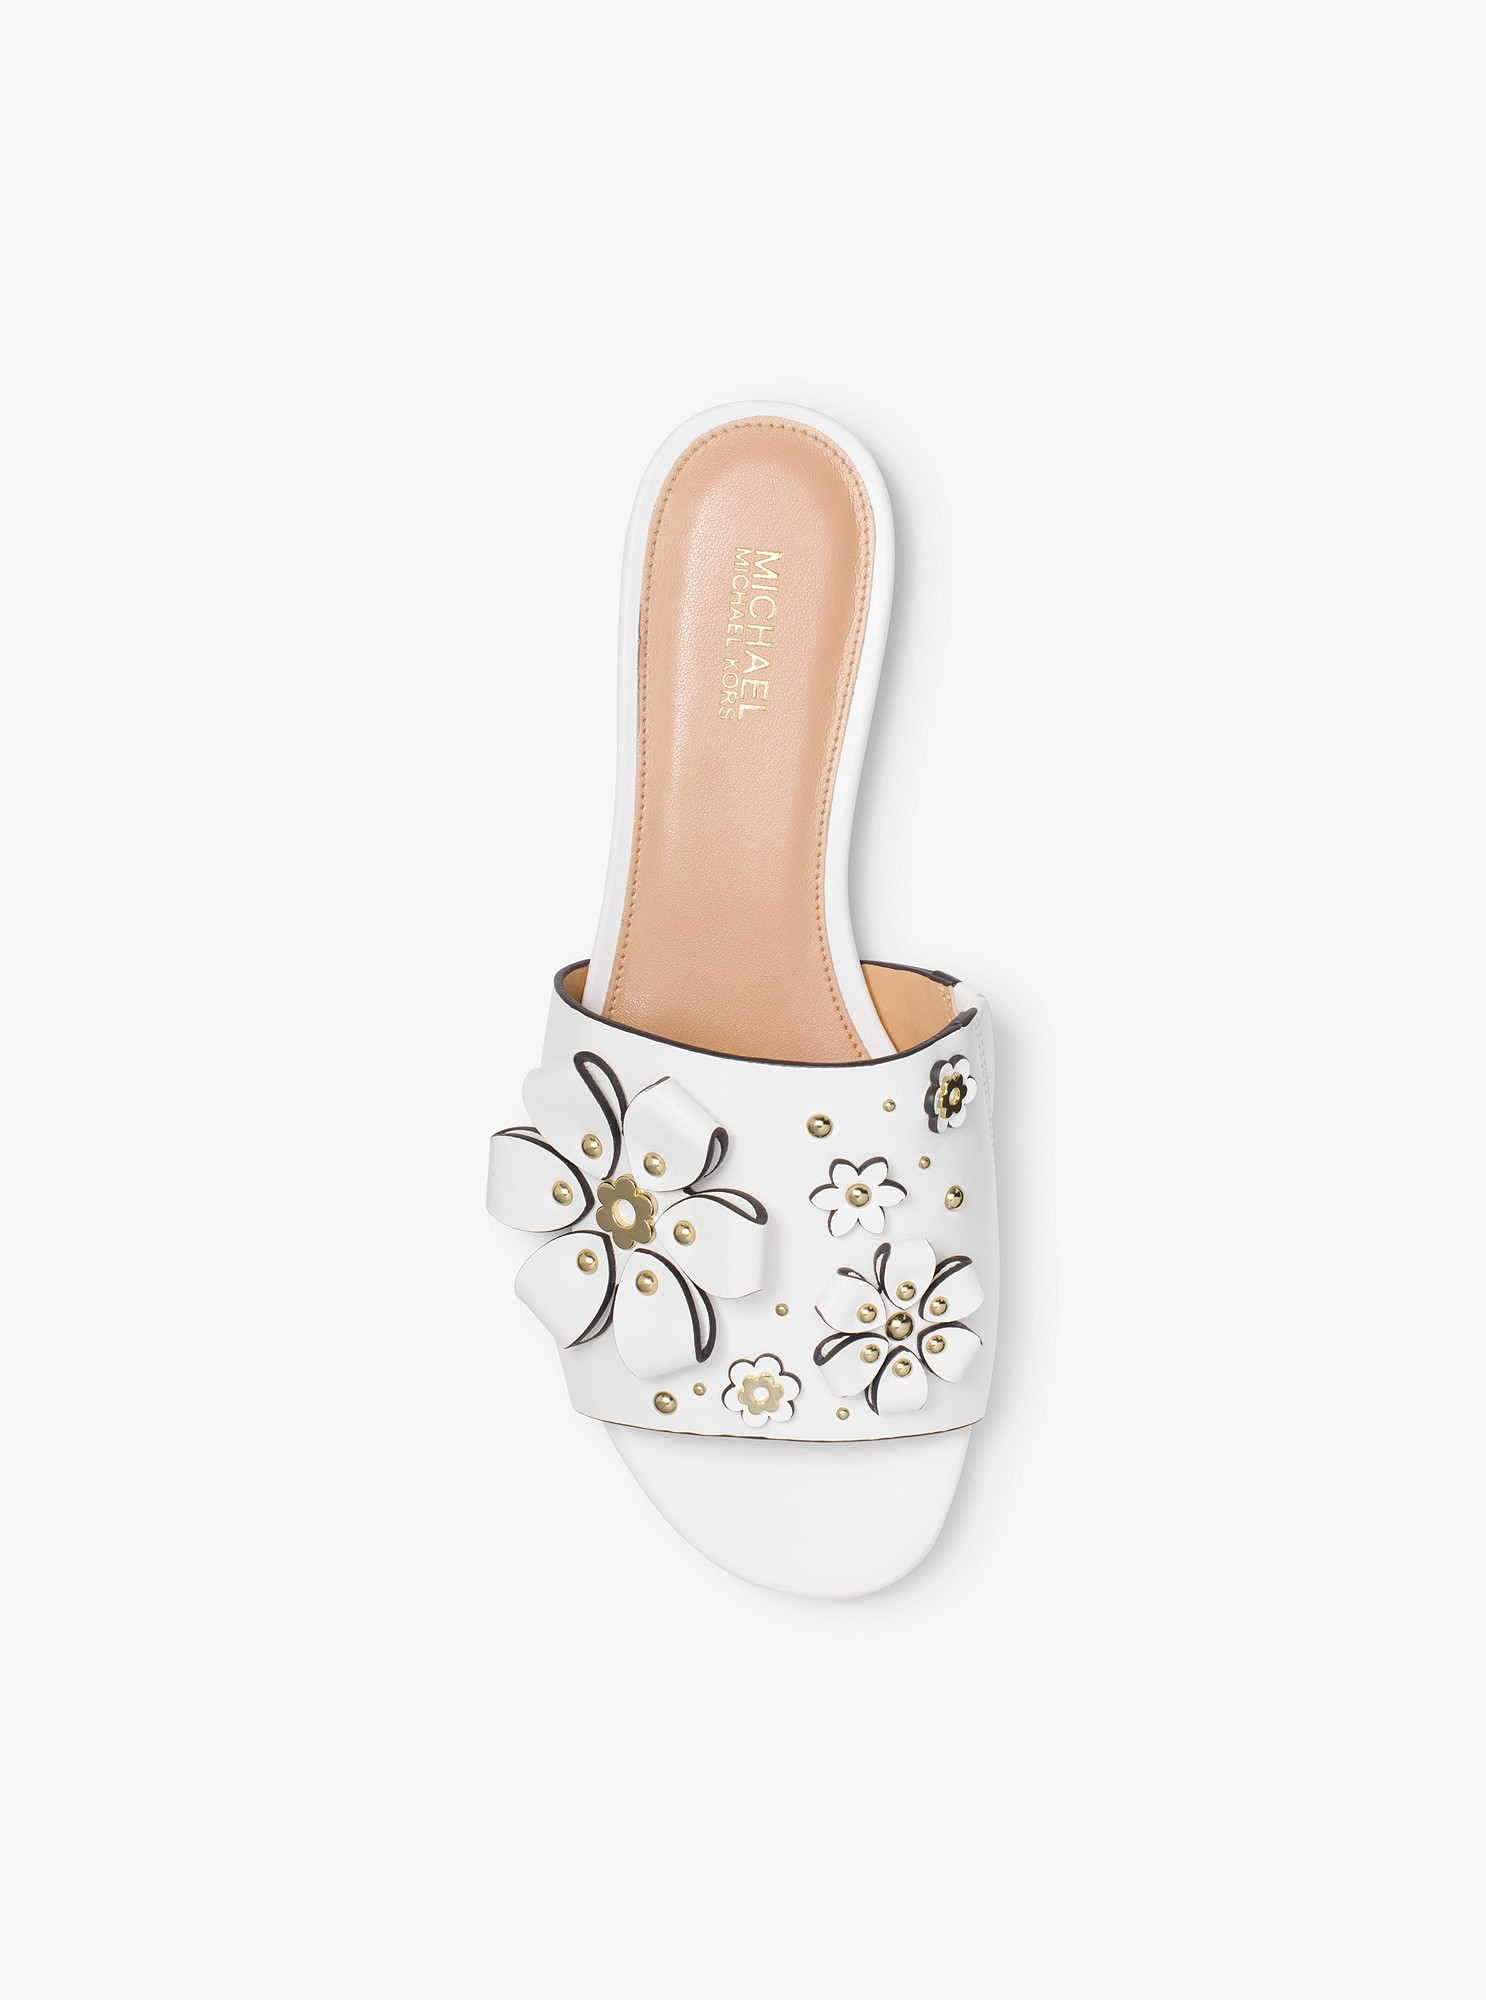 bd4696f98a0 Michael Kors Tara Floral Embellished Leather Slide - Optic White 5.5 ...